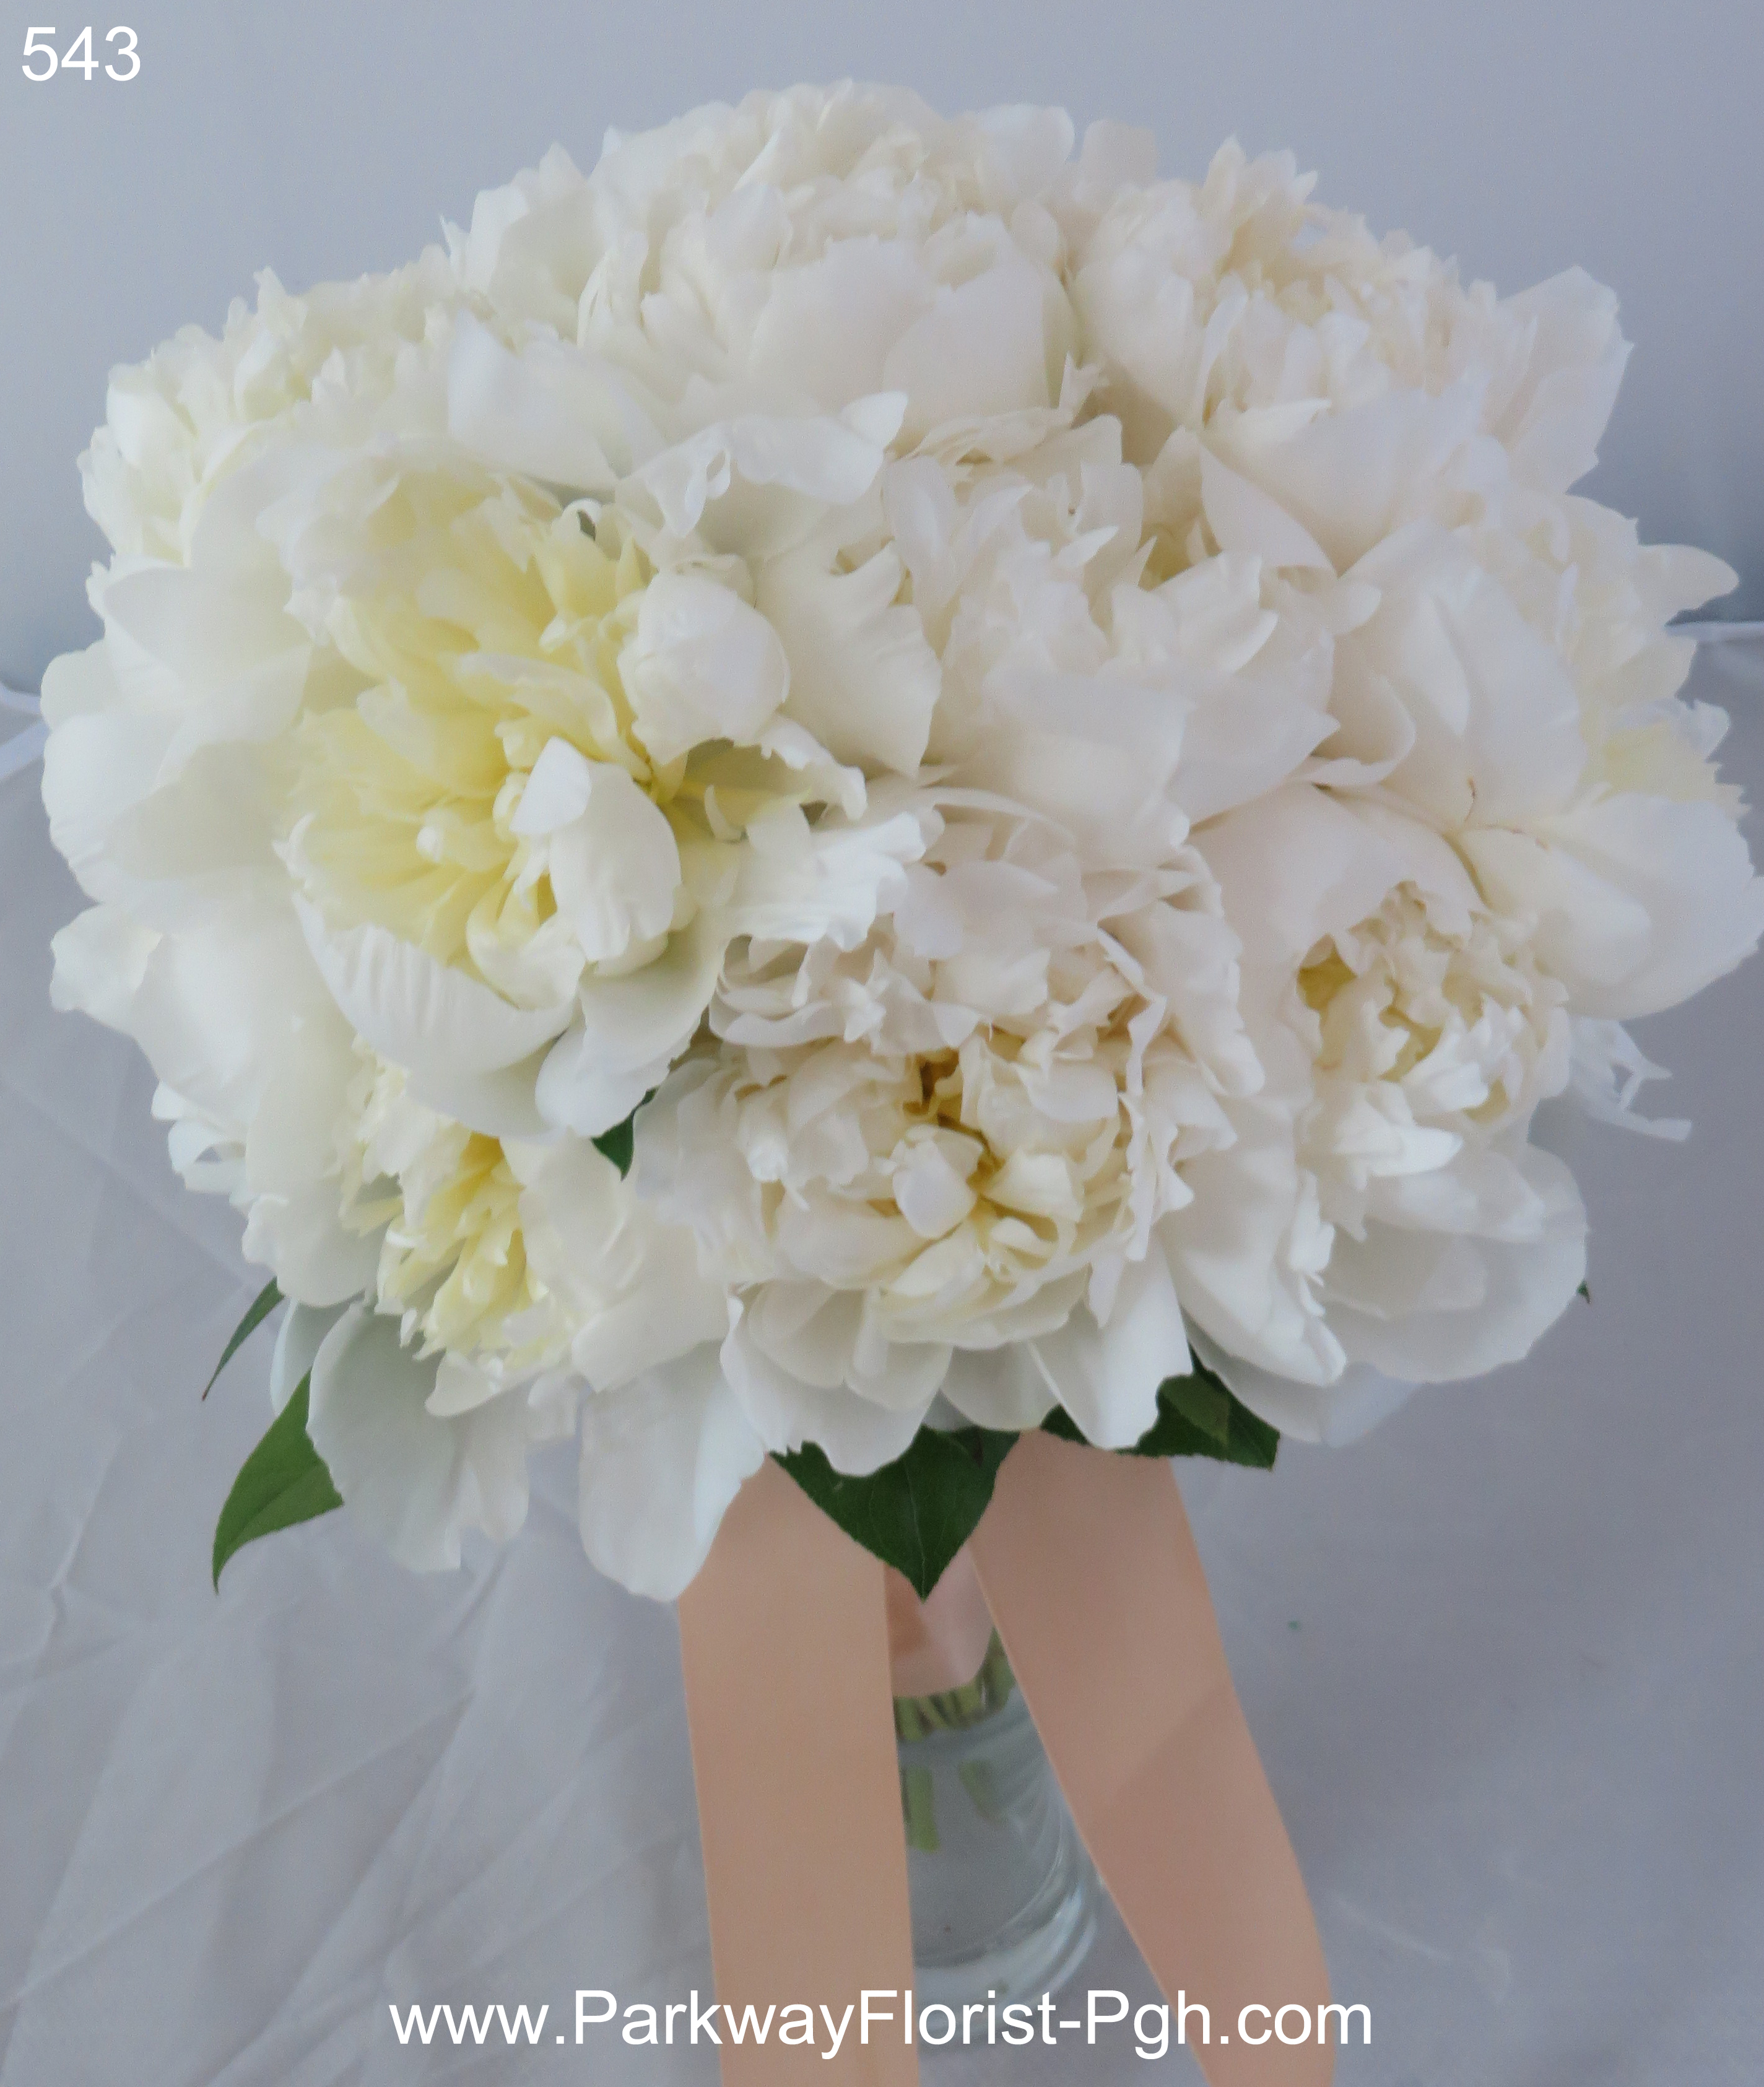 Wedding bouquets parkway florist pittsburgh blog bouquets 560 bouquets 529 bouquets 539 bouquets 543 izmirmasajfo Choice Image